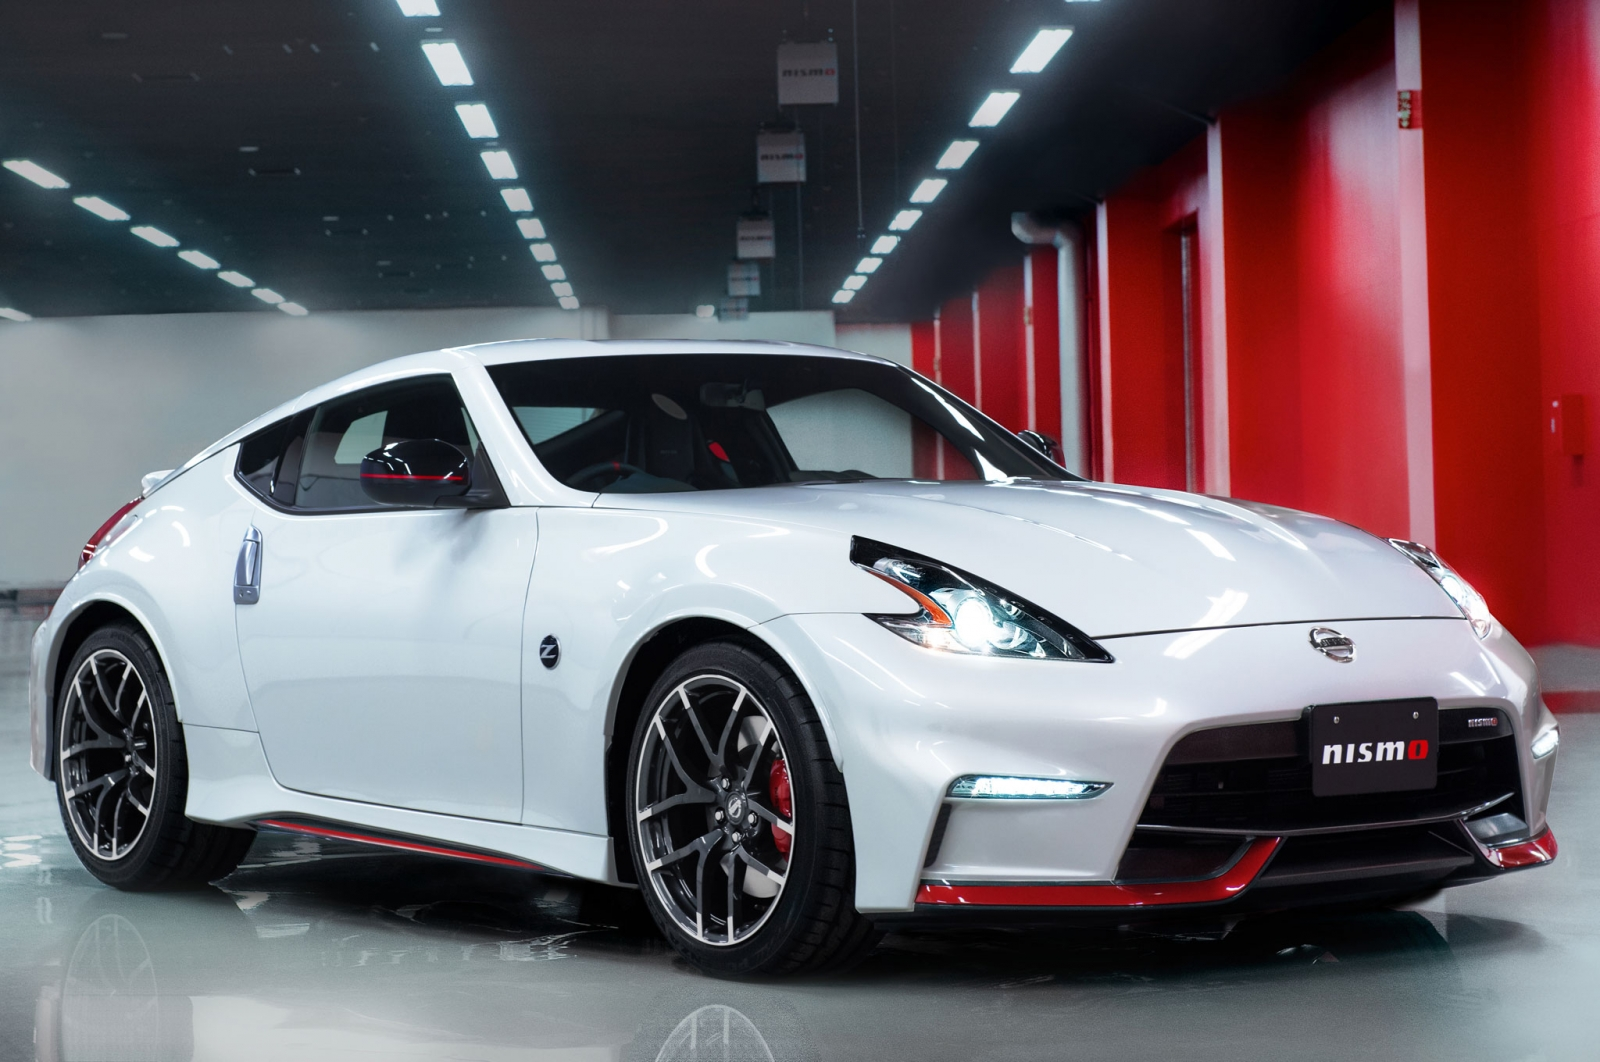 Nismo 2015+ Conversion Kit, Front Fascia Base Kit - Nissan 370Z Z34